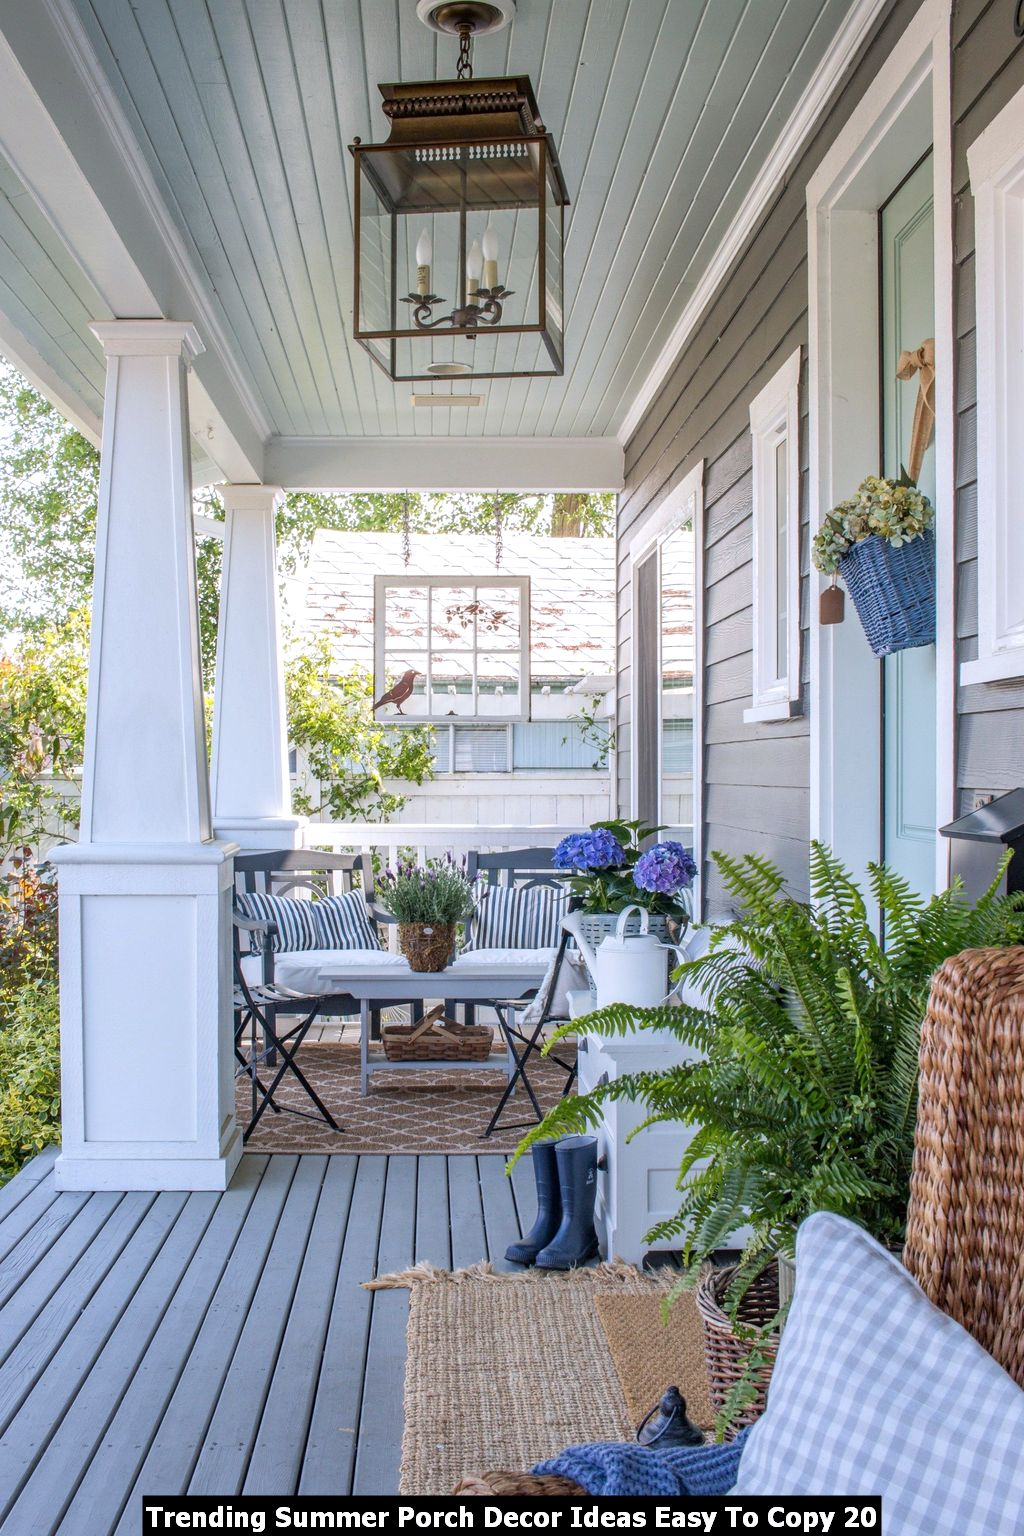 Trending Summer Porch Decor Ideas Easy To Copy 20